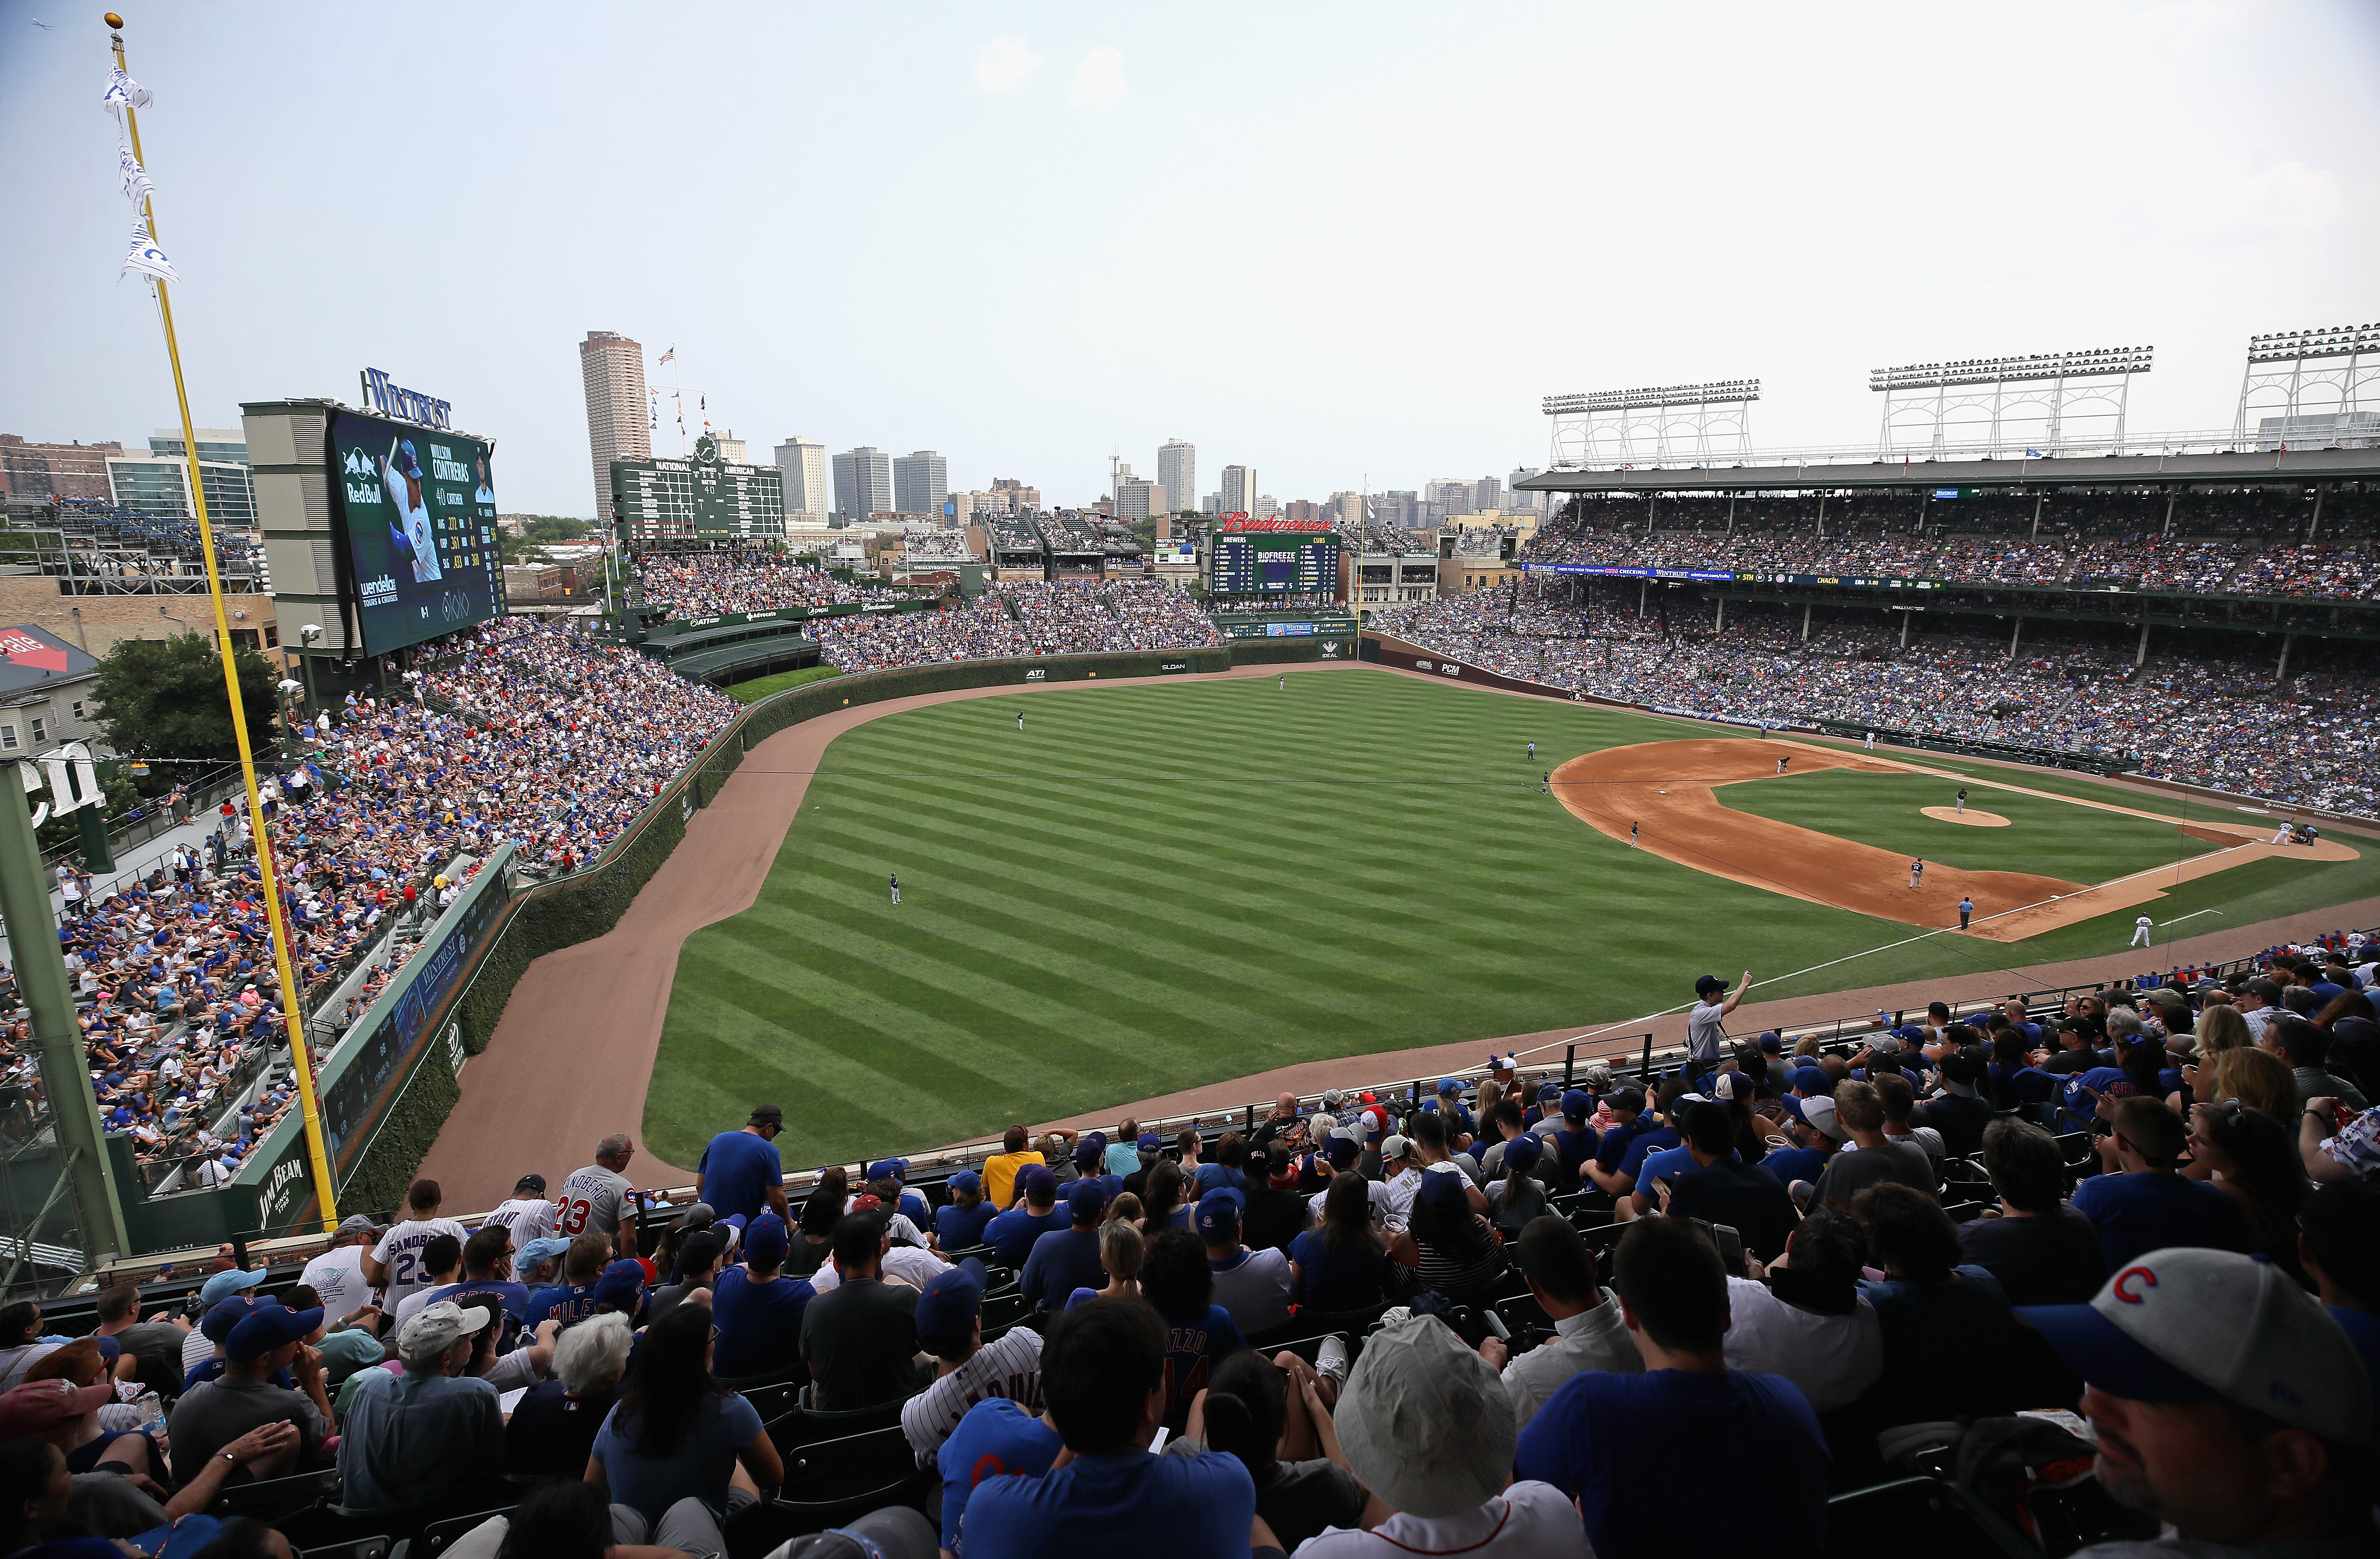 Cubs season tickets for 2019 will be a great value: Myth or reality